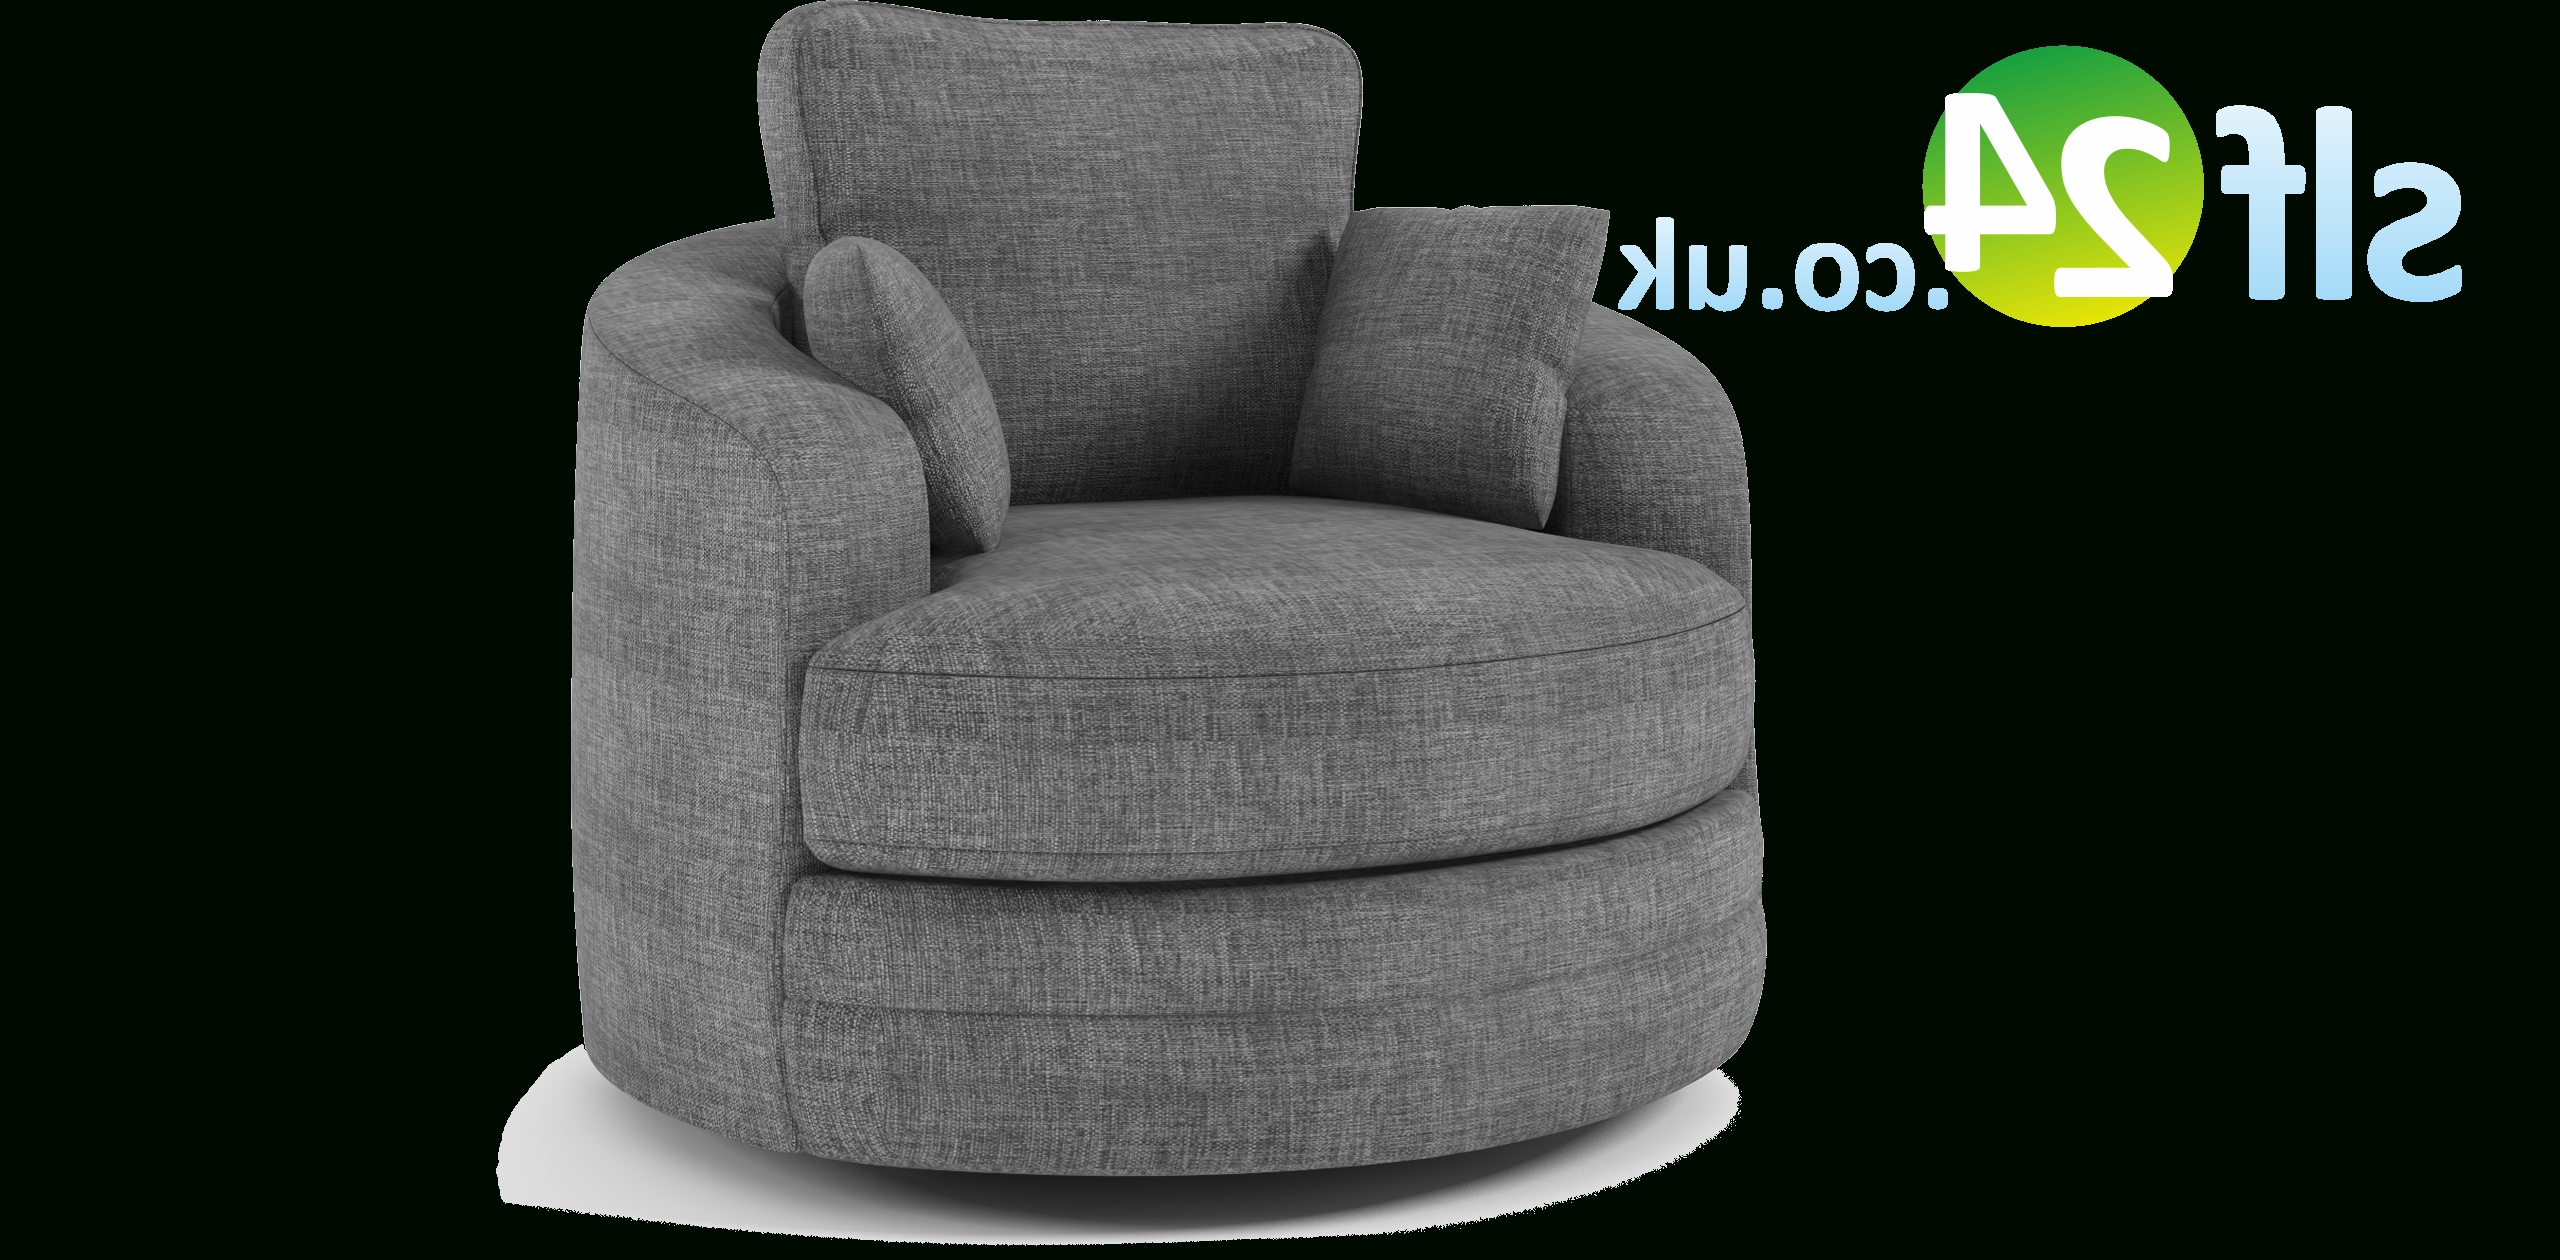 Swivel Sofa Chairs Throughout Well Known Love Swivel Cuddle Chair Sofa (View 13 of 20)